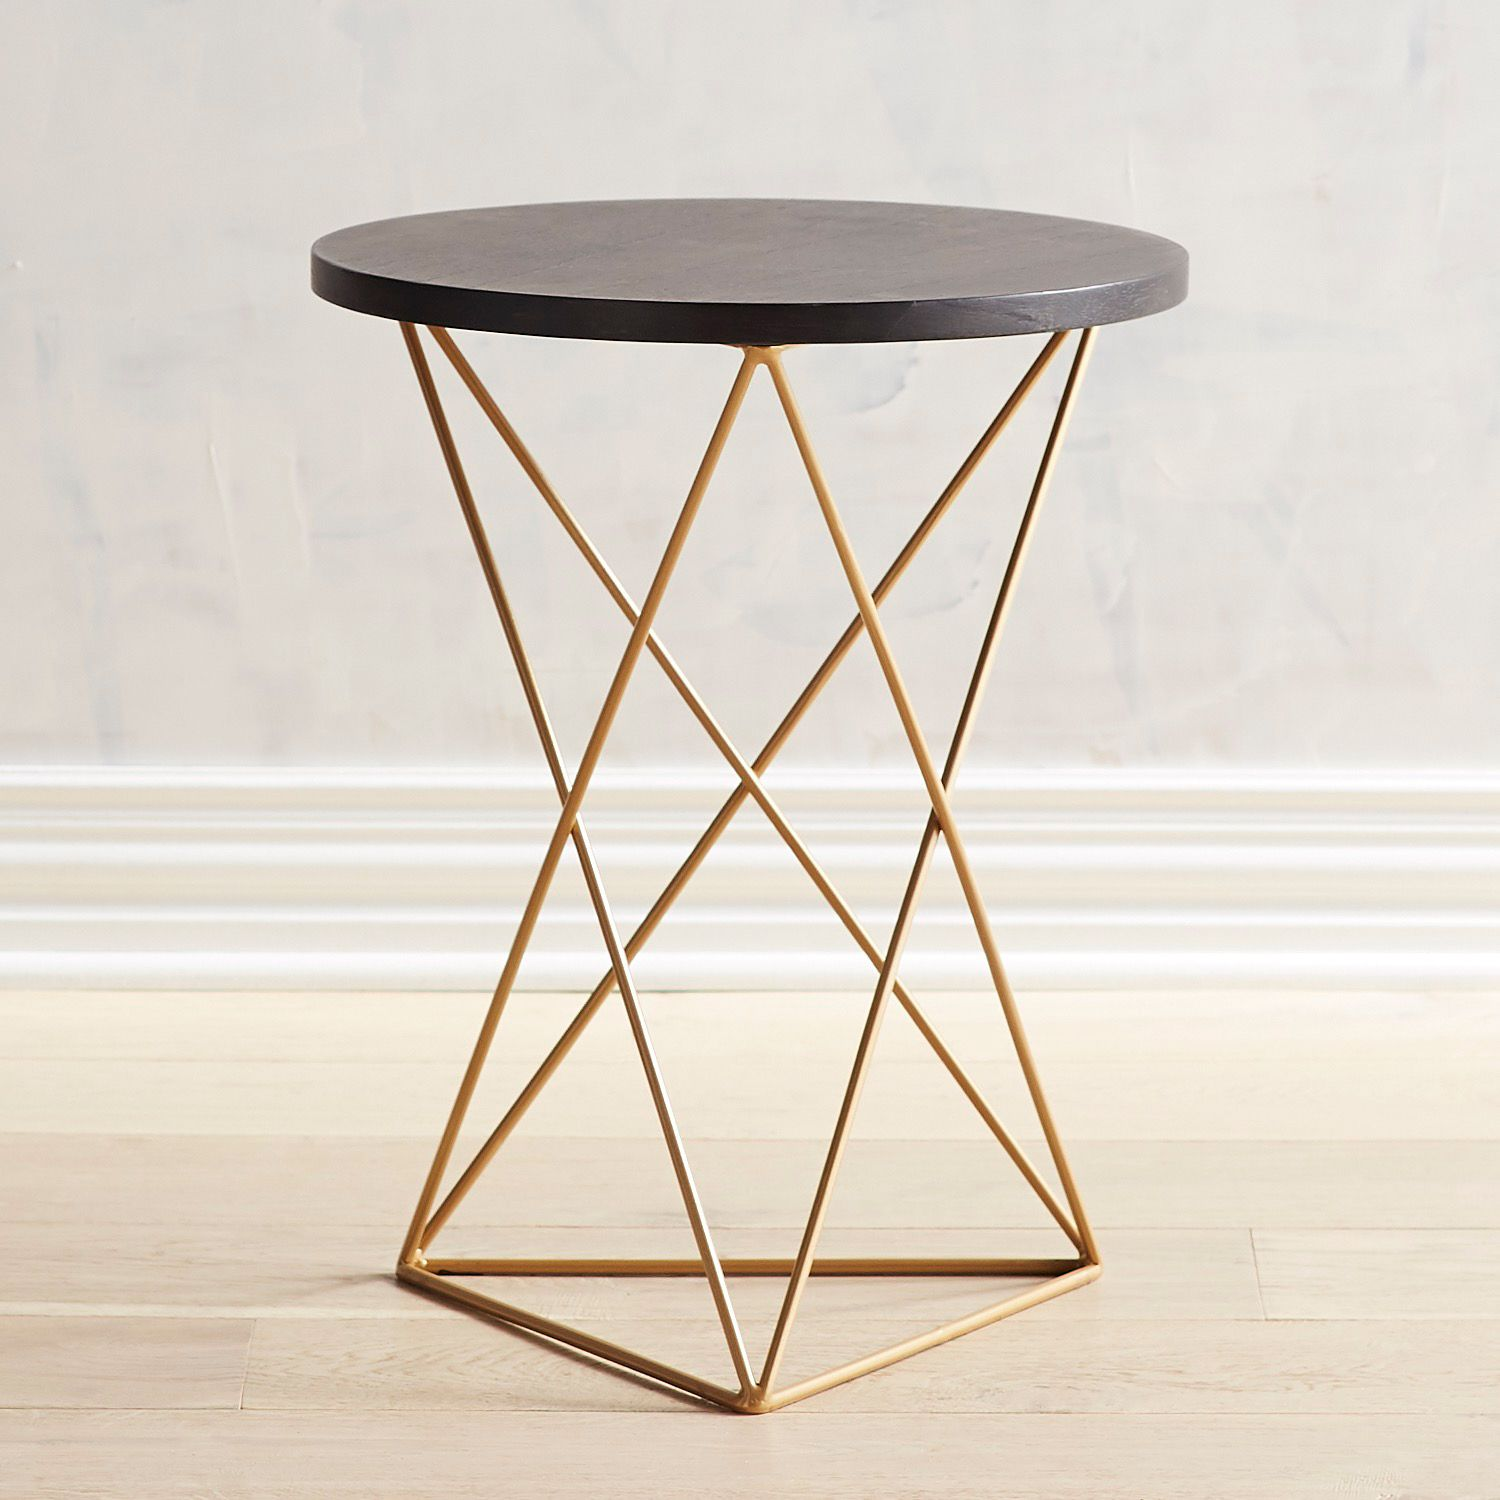 modern accent table pier imports outdoor tables bunnings garden seat kijiji bedroom set small battery powered lamp simple live wood one bar stools counter height dining black